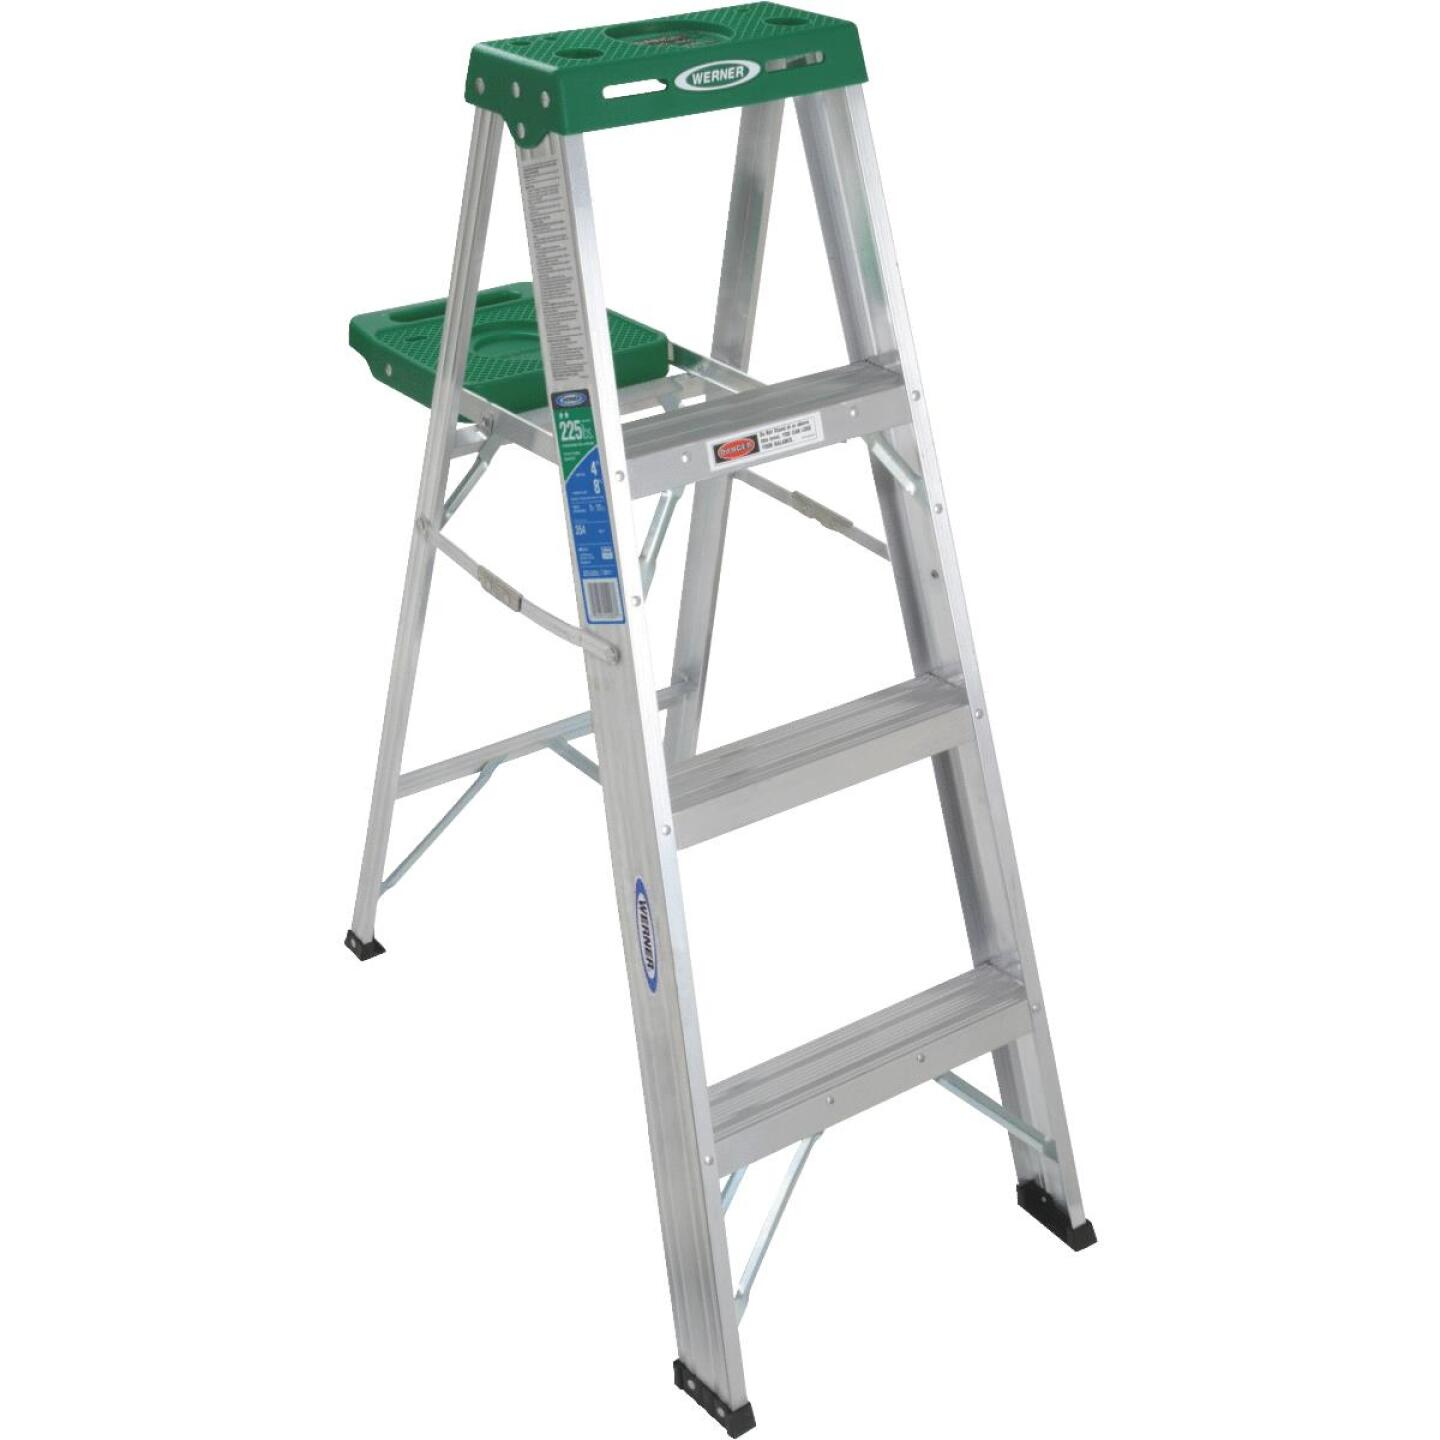 Werner 4 Ft. Aluminum Step Ladder with 225 Lb. Load Capacity Type II Ladder Rating Image 3